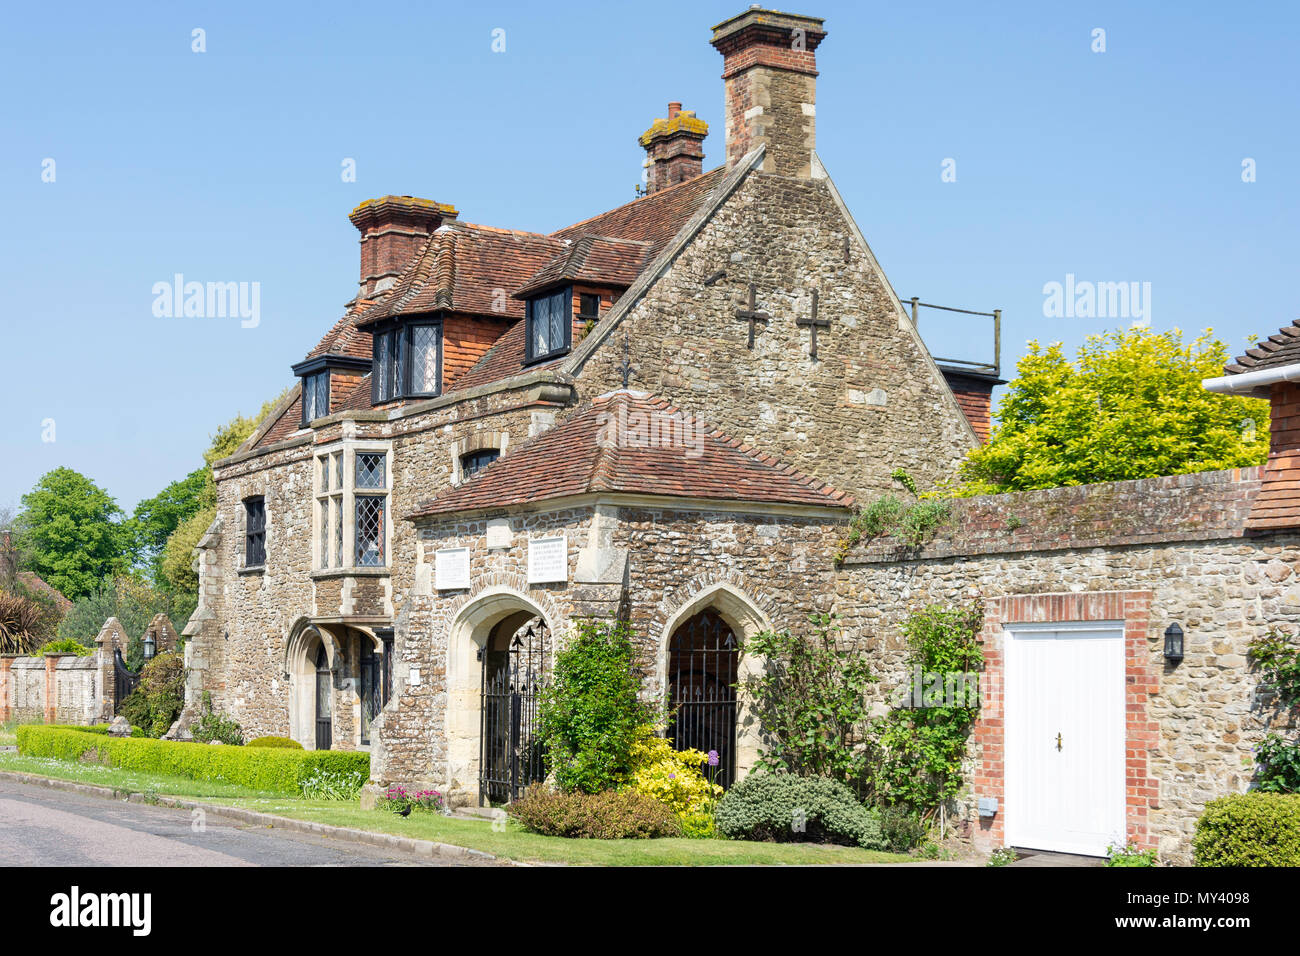 The 13th century Armoury and Town Well, Castle Street, Winchelsea, East Sussex, England, United Kingdom - Stock Image